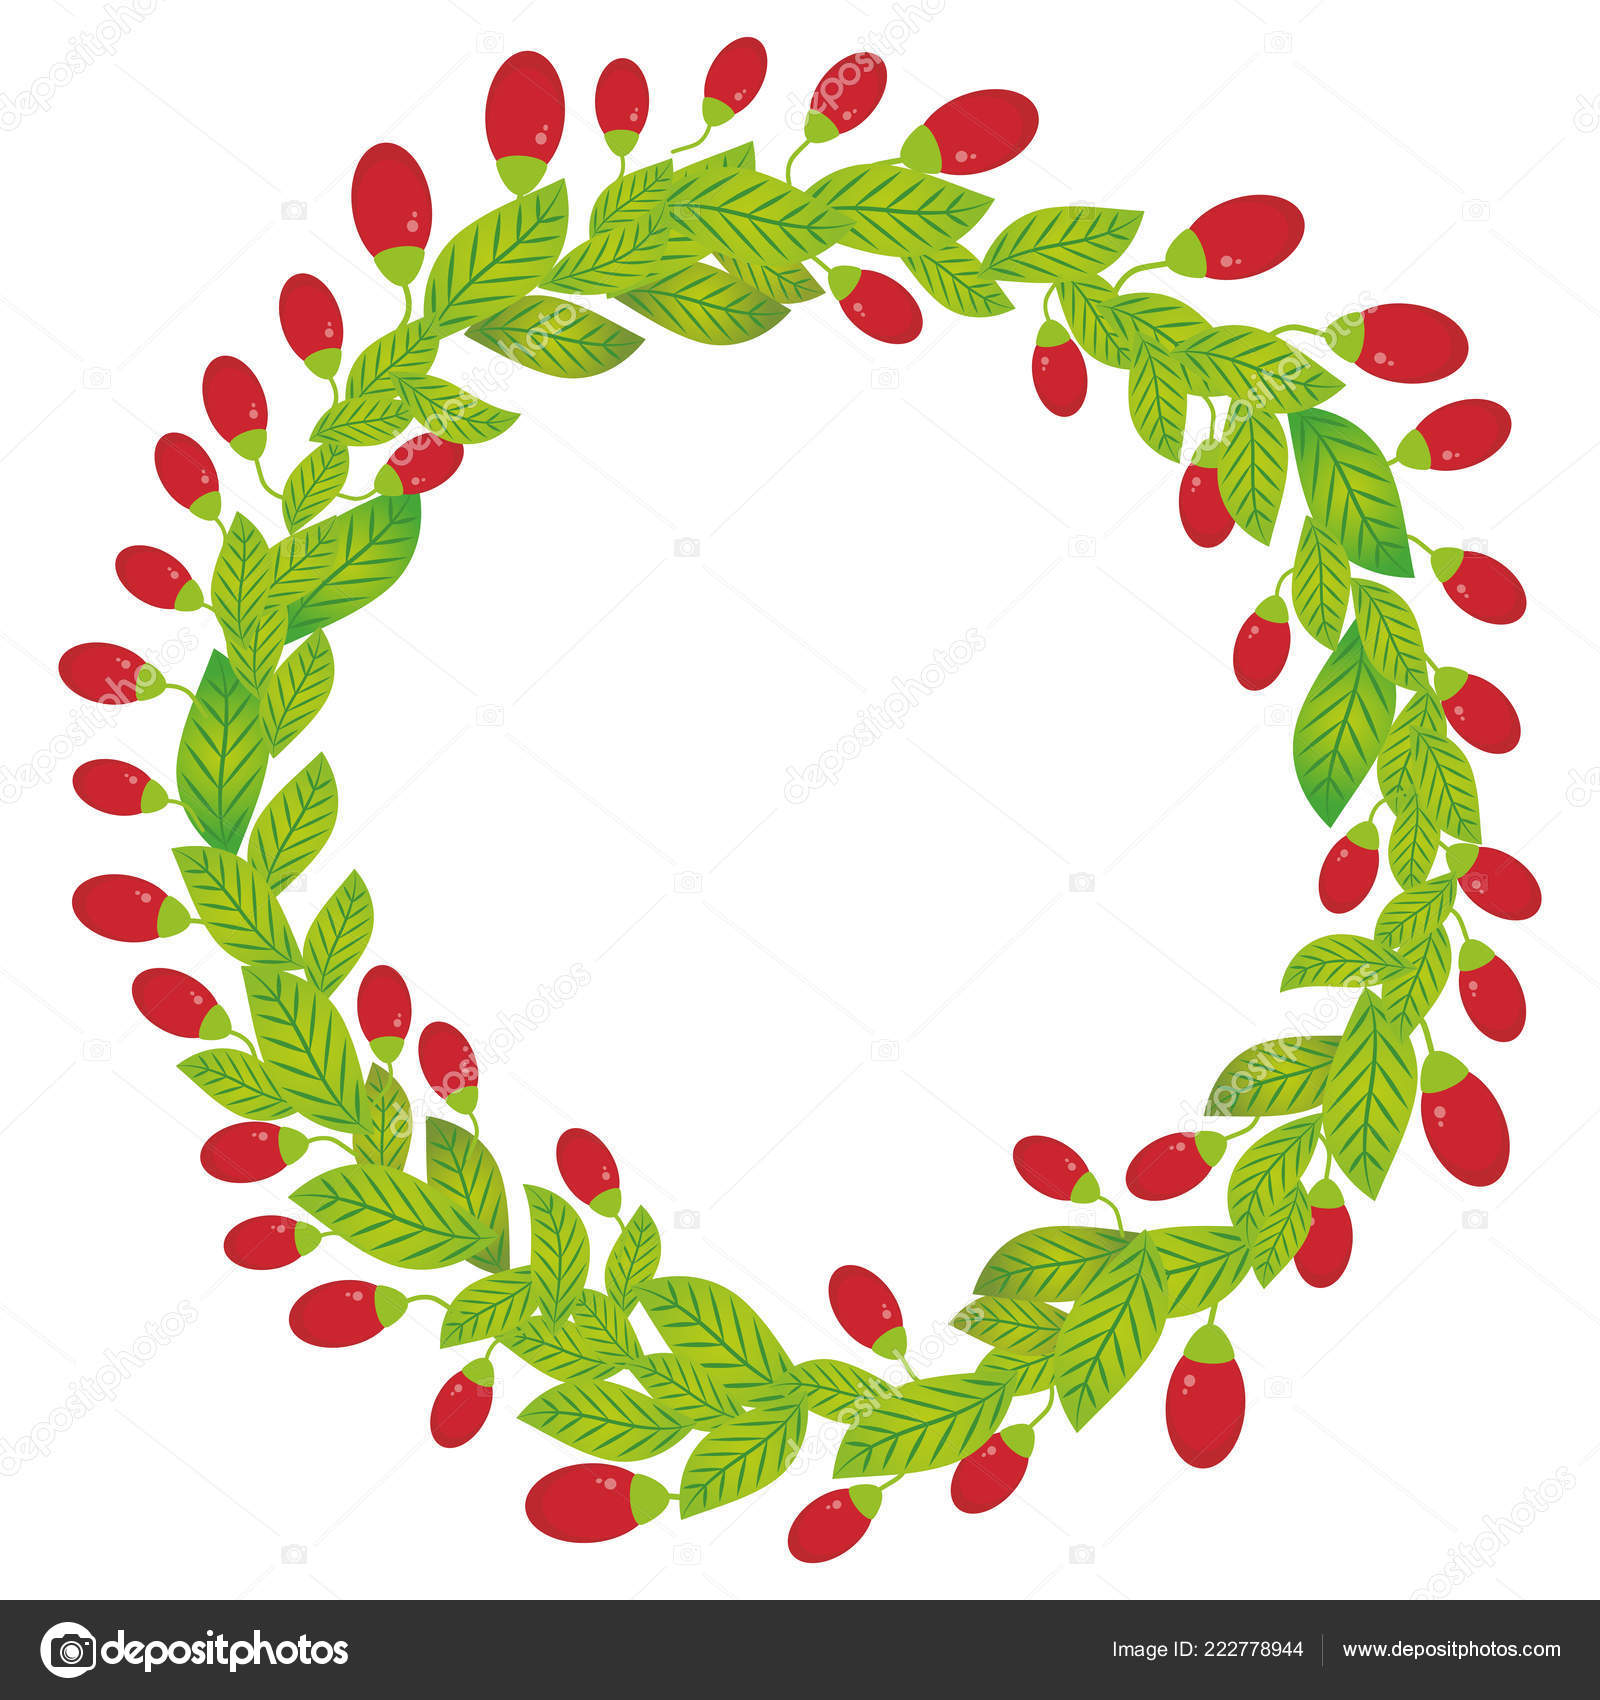 Wreath Green Leaves Red Goji Berry Fresh Juicy Berries Isolated